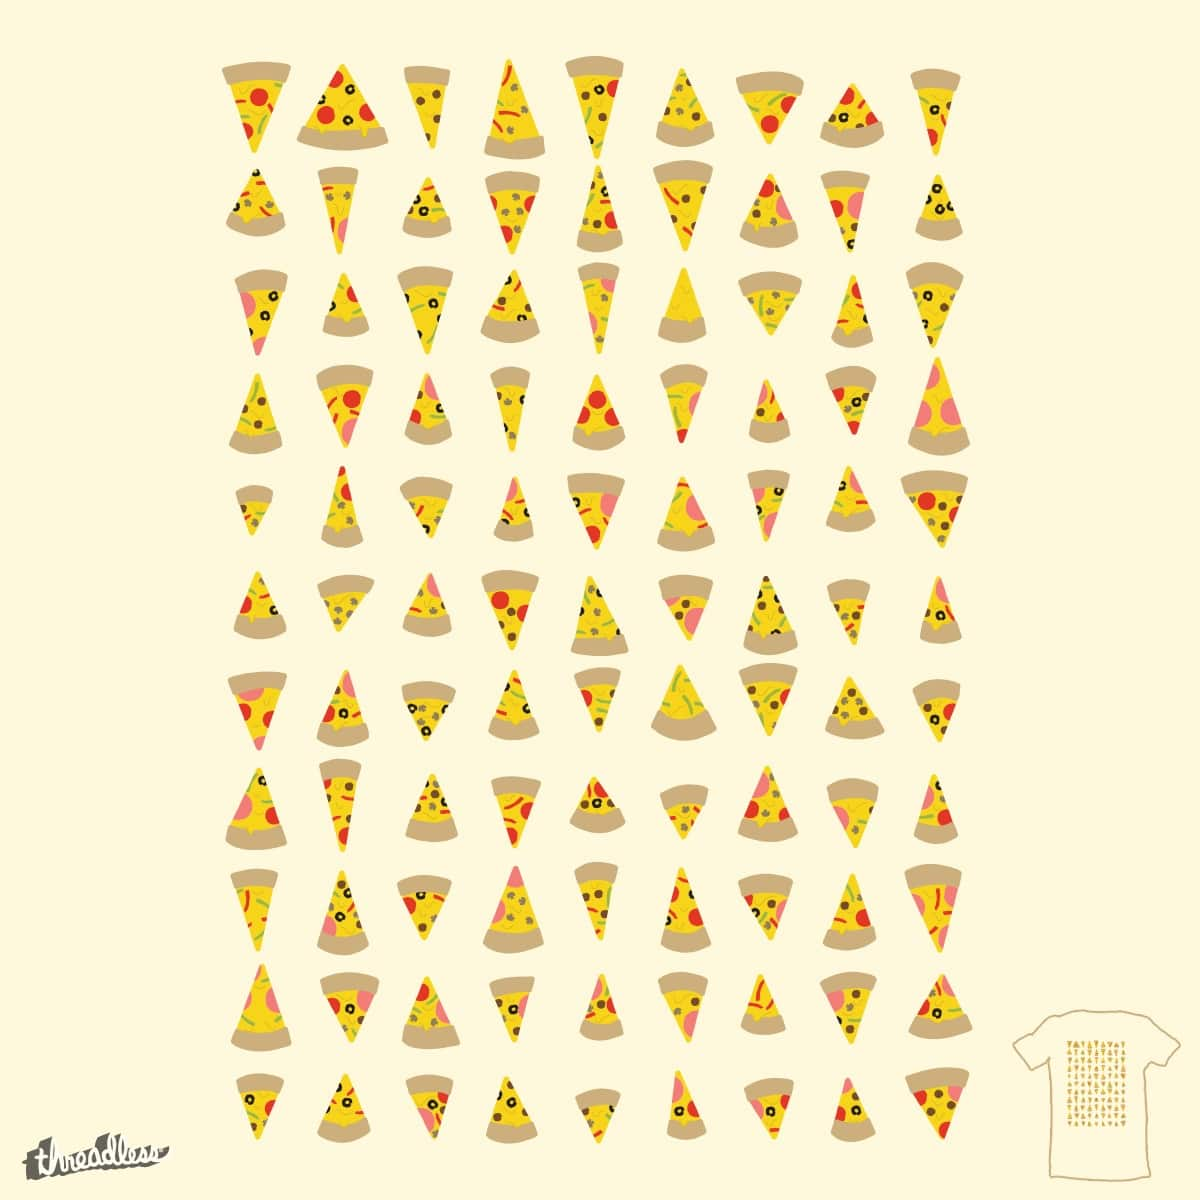 99 Slices of Za on the Wall by 5eth on Threadless